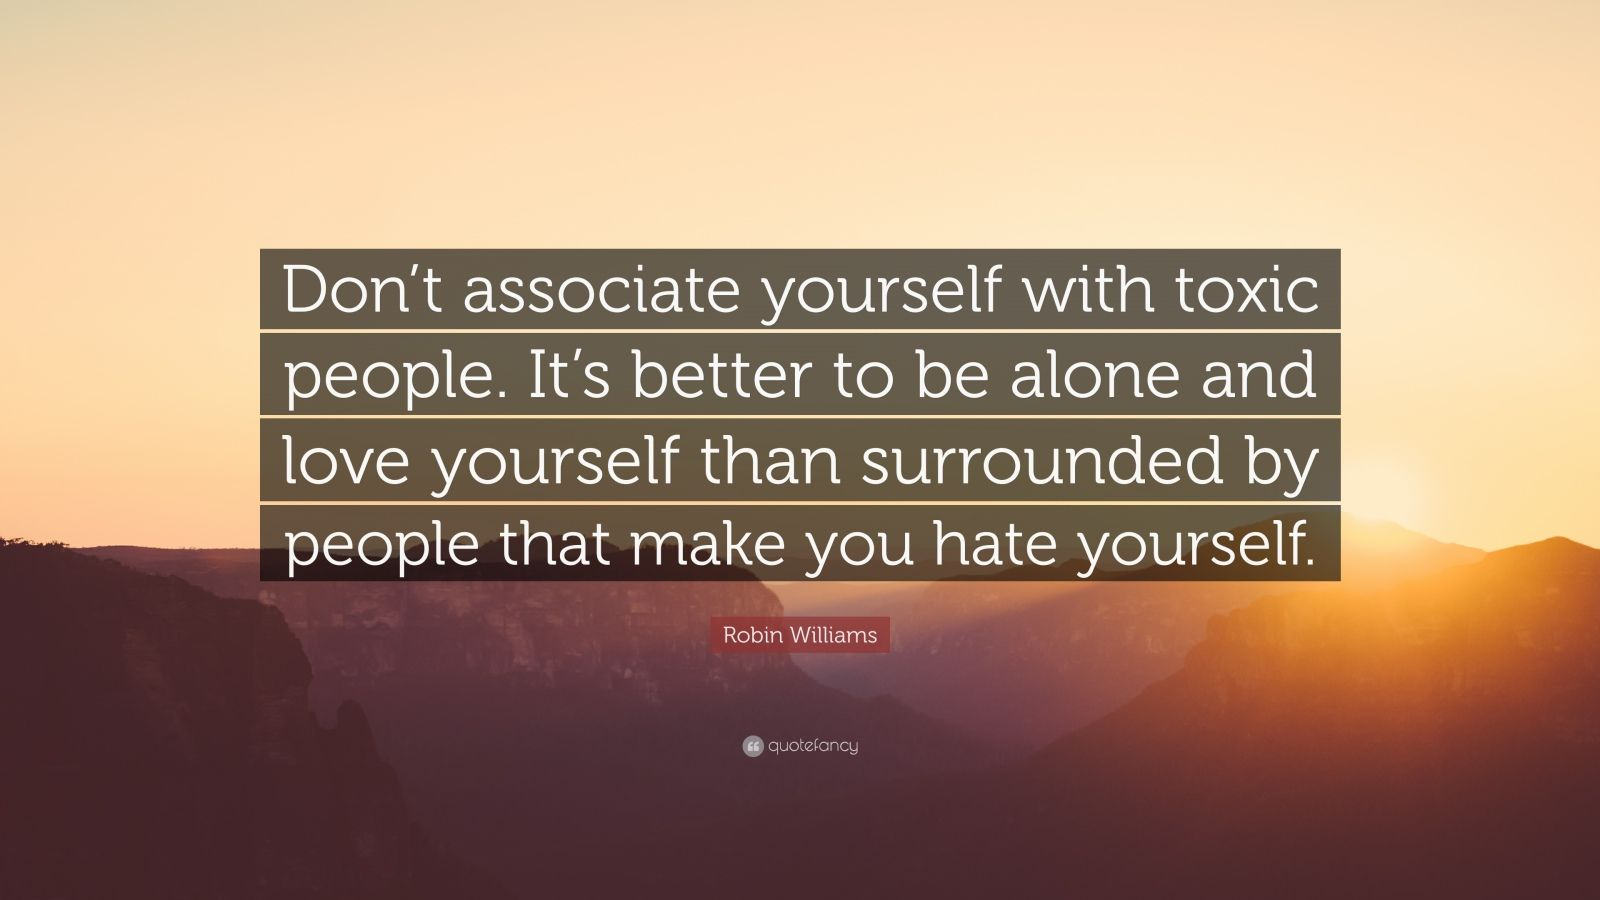 """Robin Williams Quote: """"Don't associate yourself with toxic people. It's better to be alone and love yourself than surrounded by people that make you hate yourself."""""""